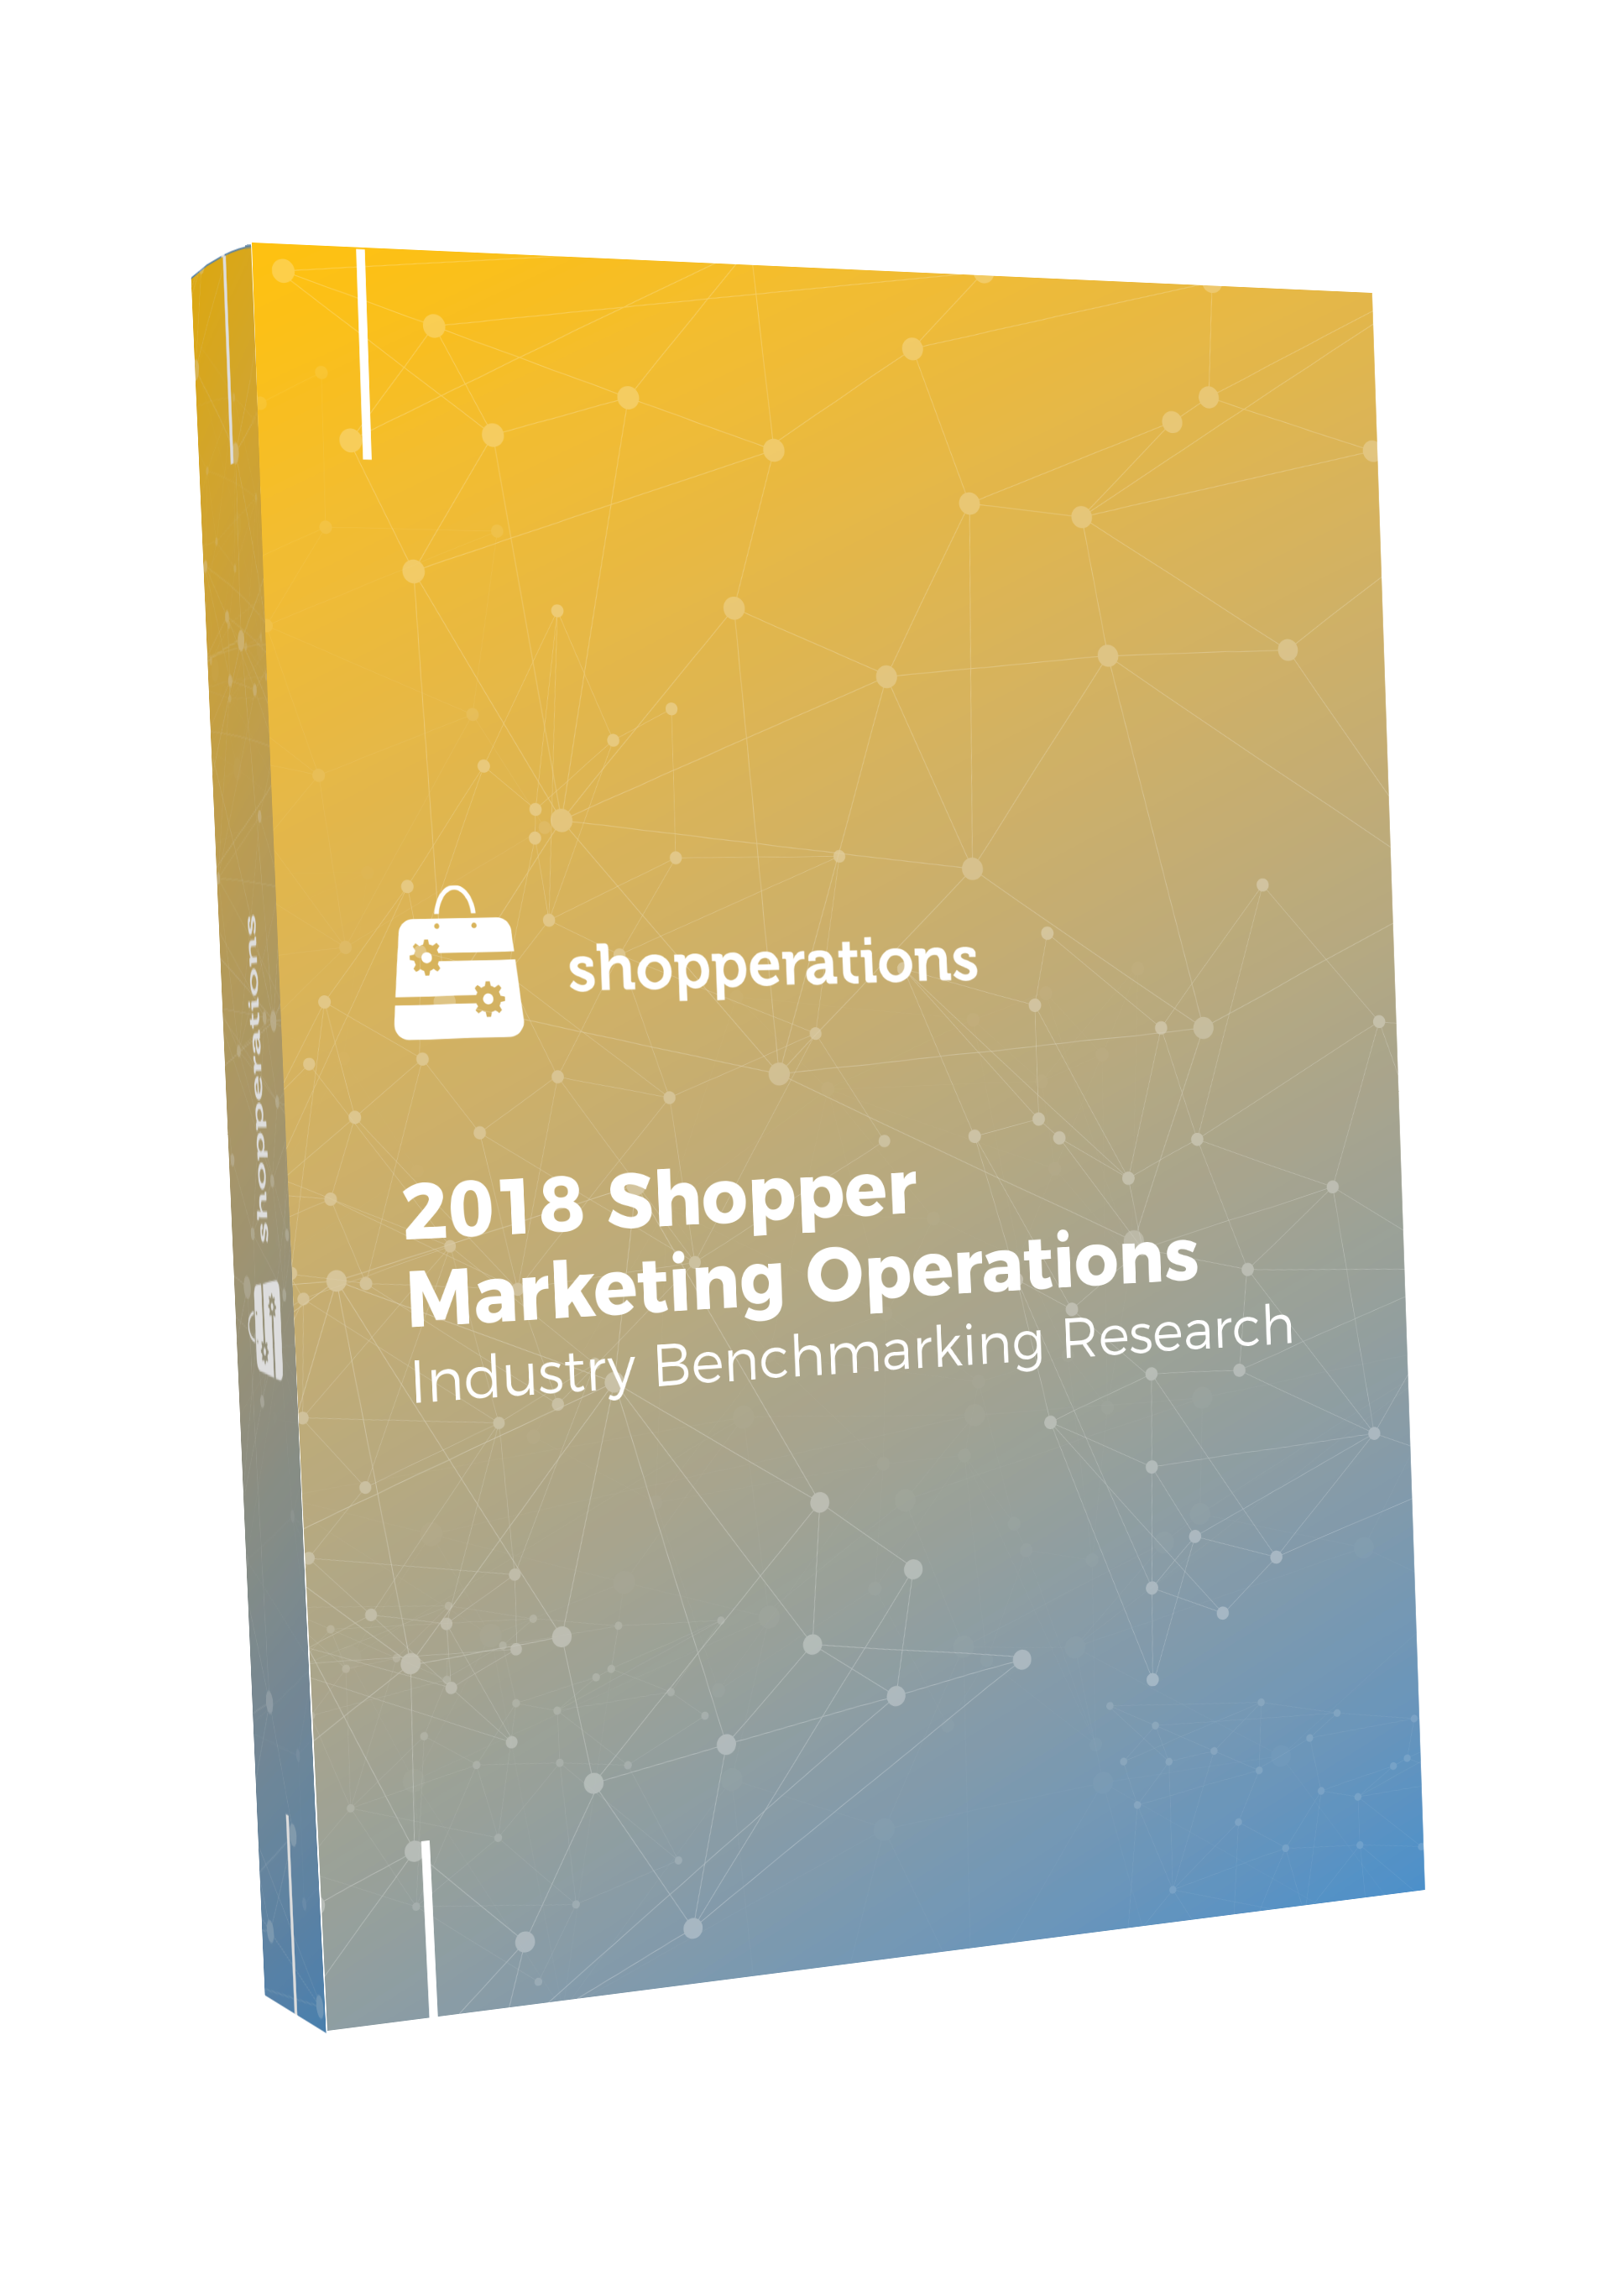 2018 Shopper Marketing Operations Industry Benchmarking Research